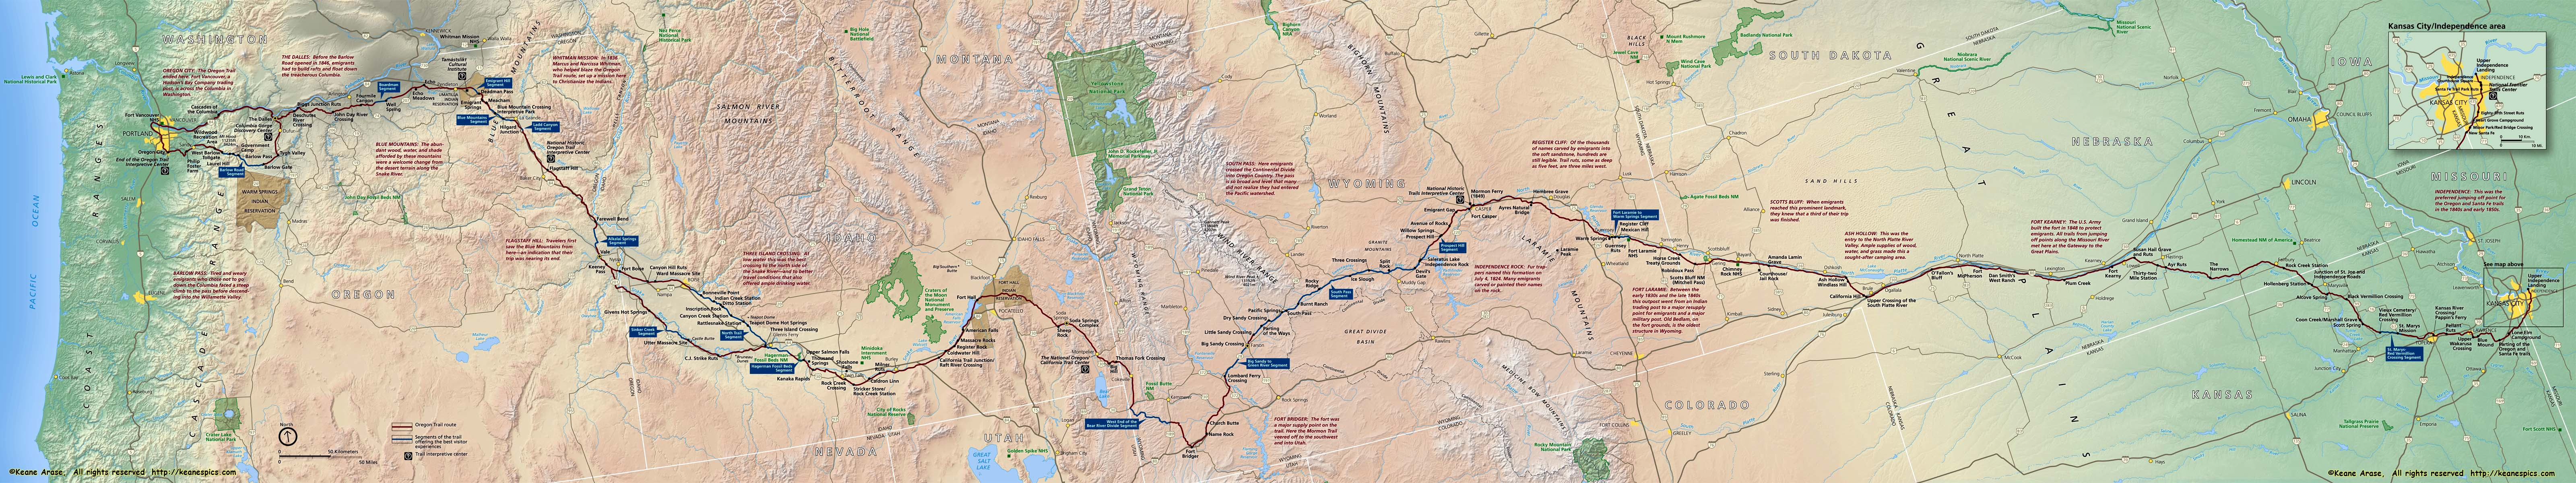 Oregon Trail On Us Map.Keane S Picture Web Site Map Of Oregon Trail Goodales Cutoff